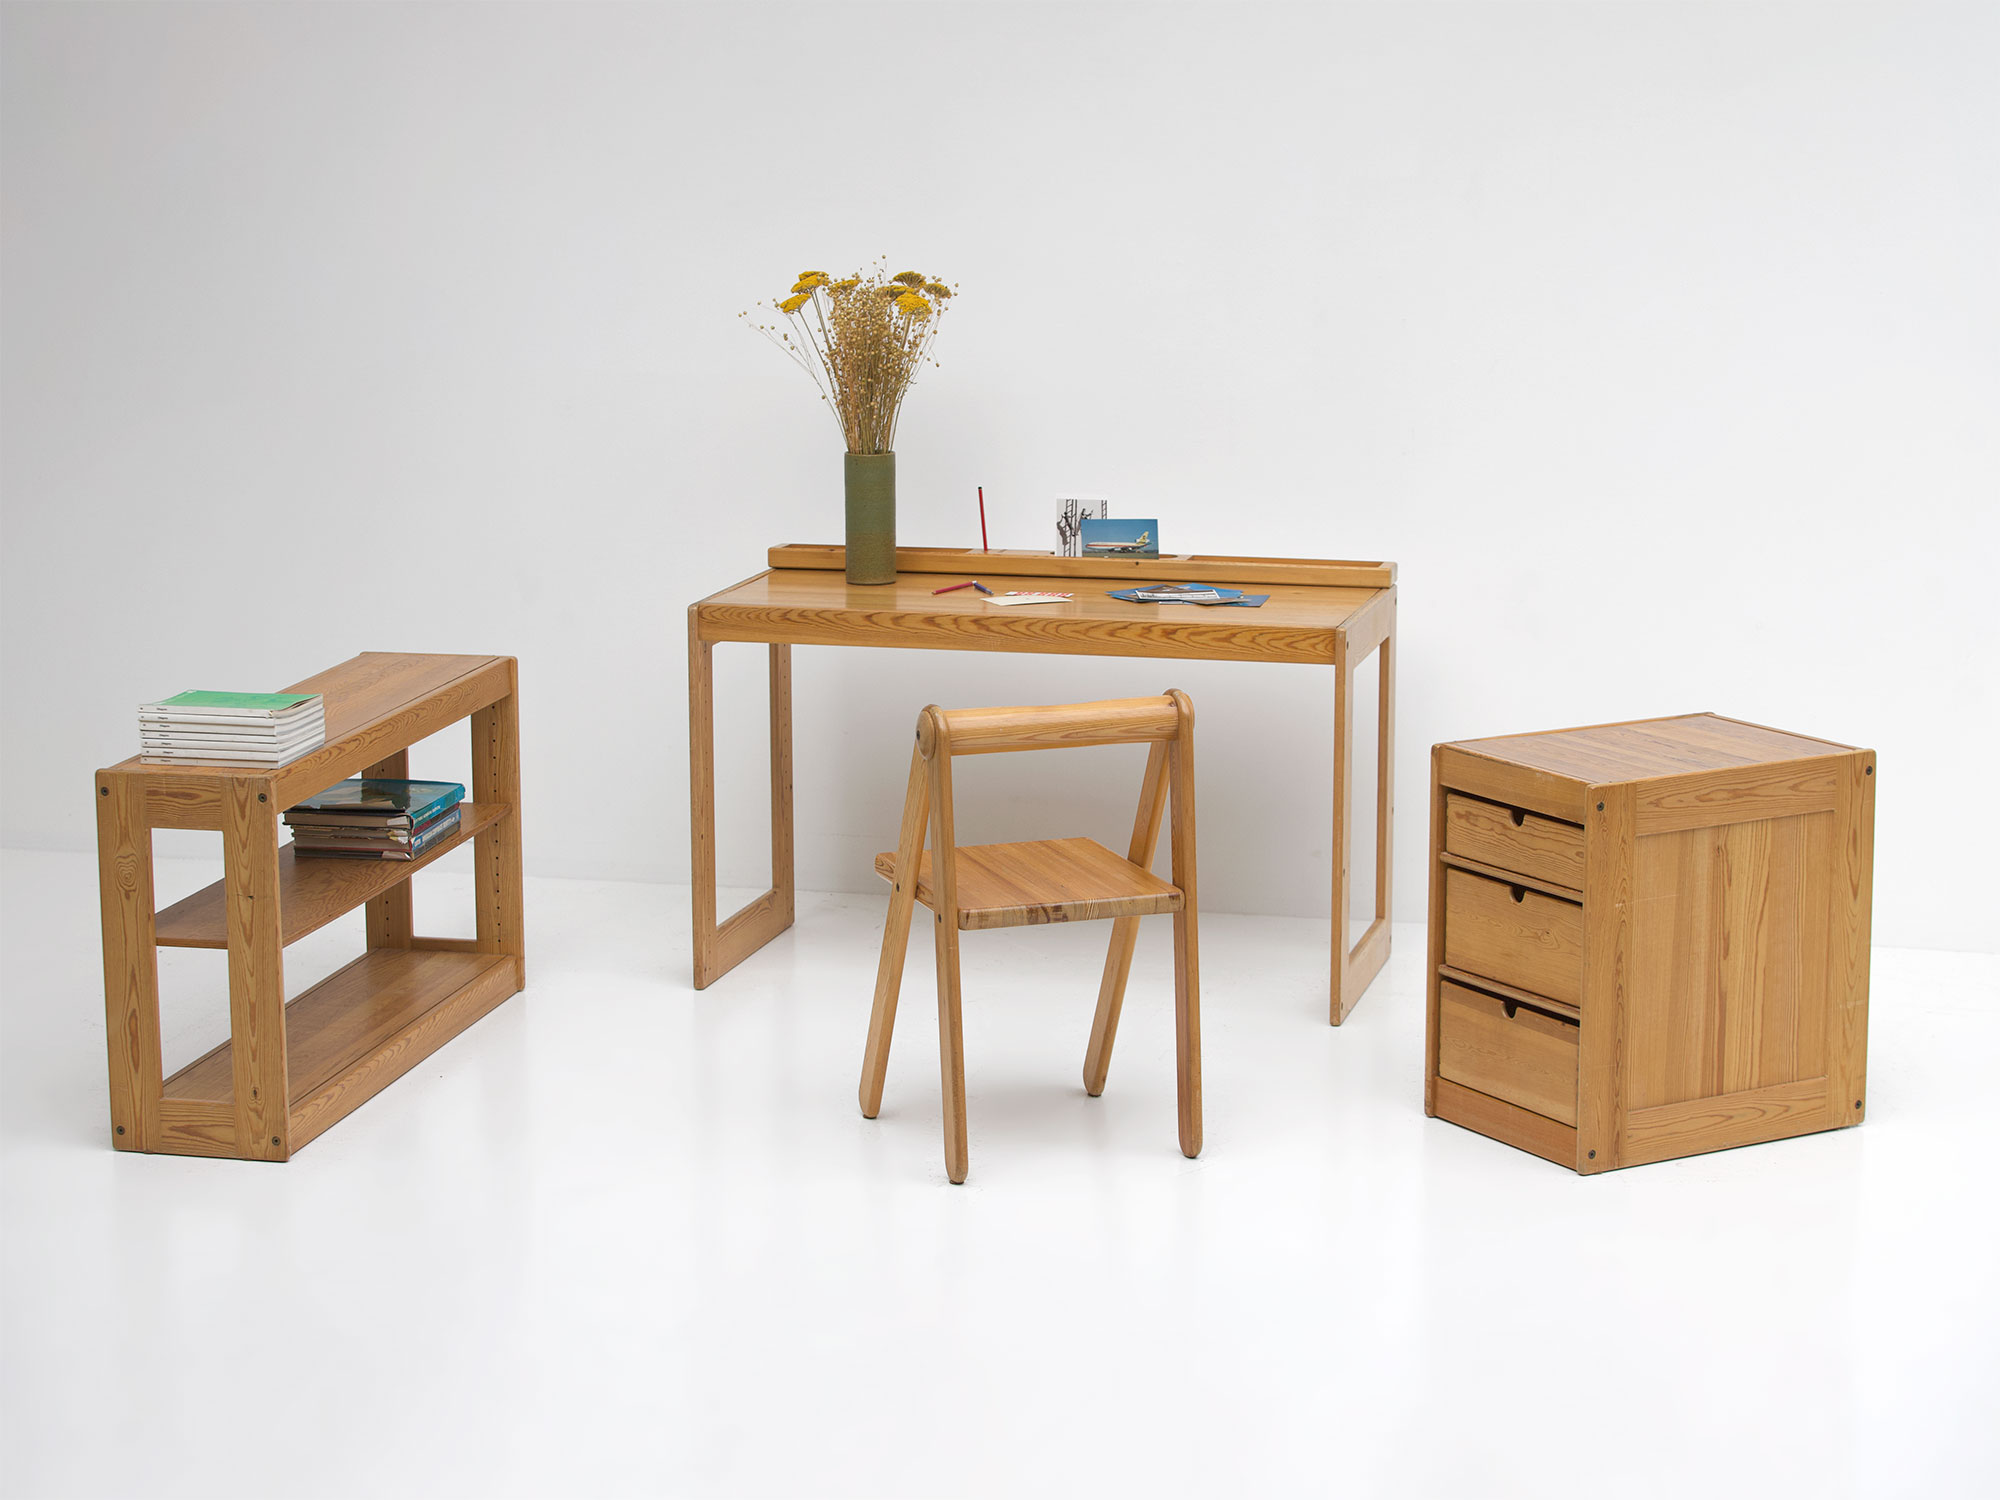 Childrens desk furniture by Pierre Grosjean for Junior Design